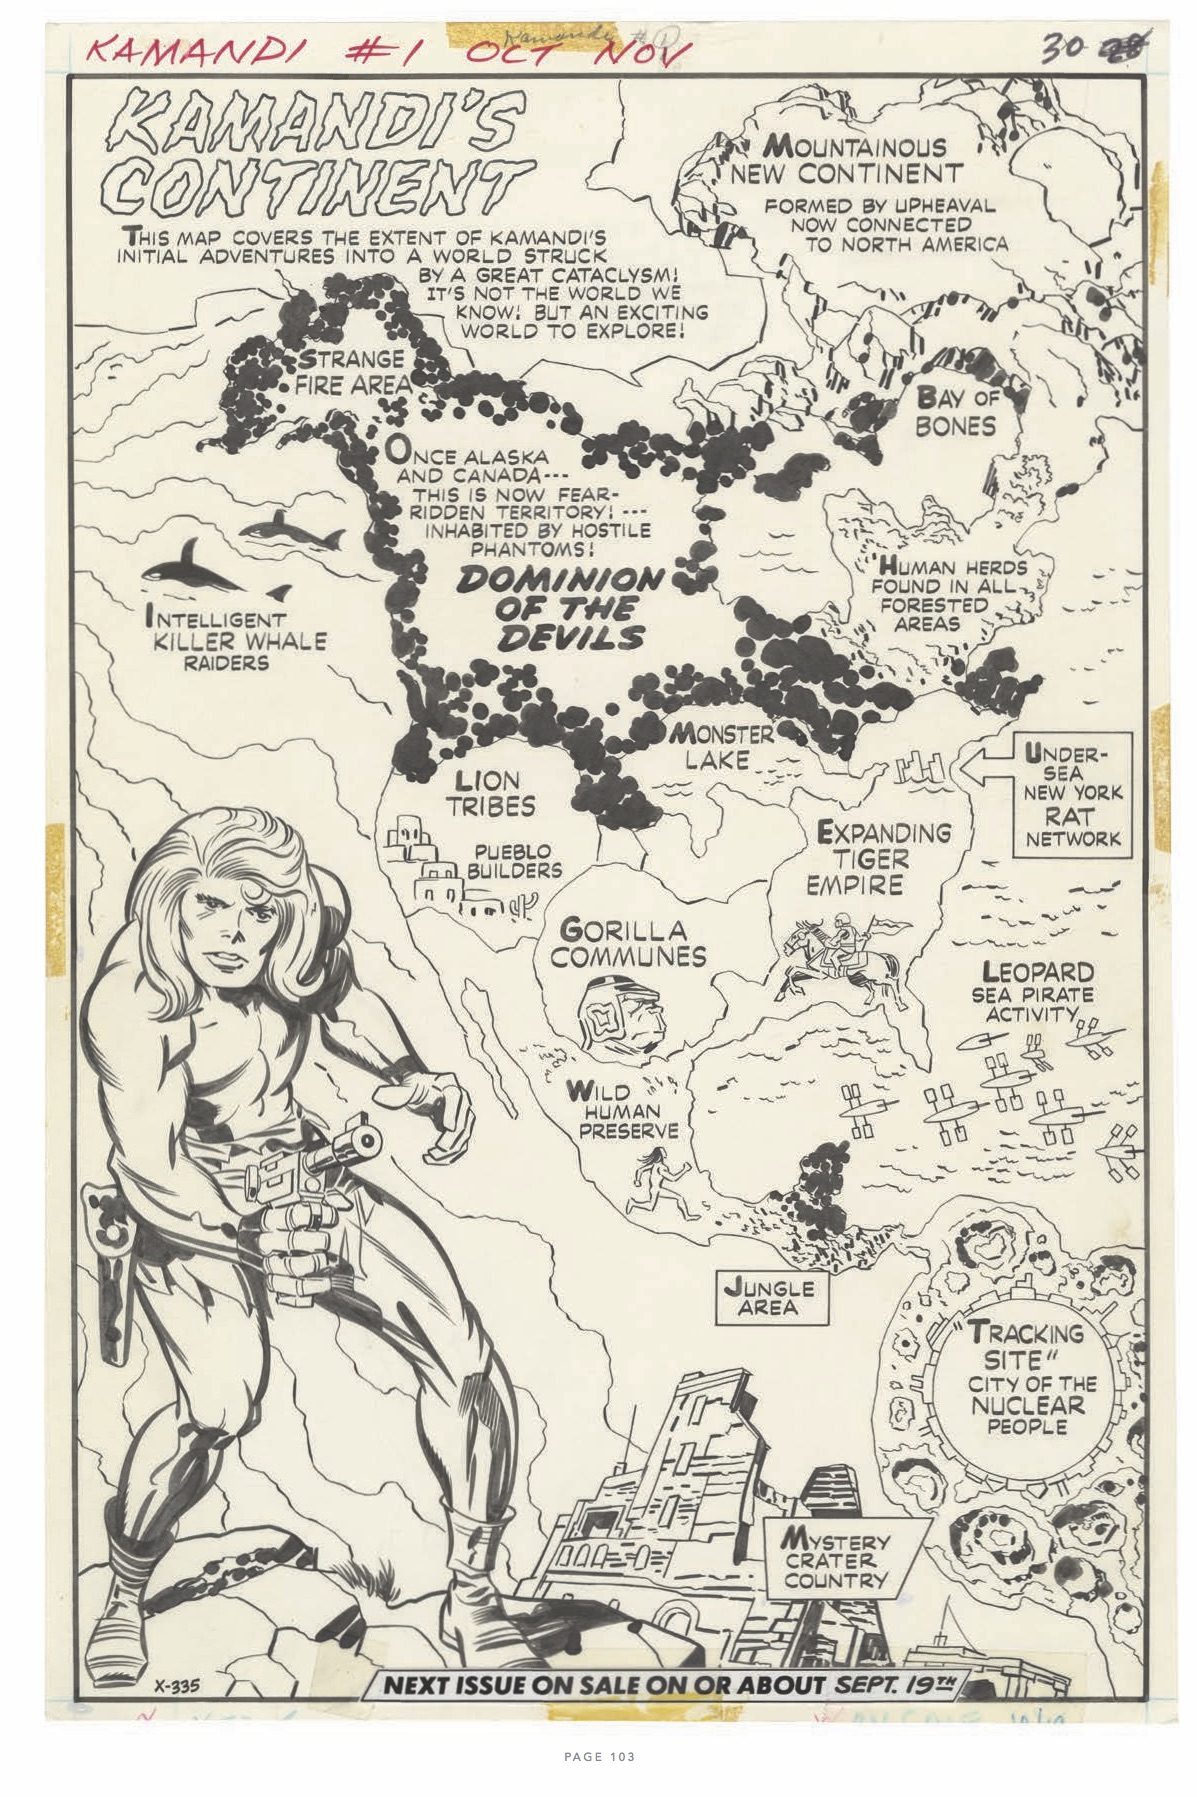 jackkirby_pencils_inks-lokam4ink